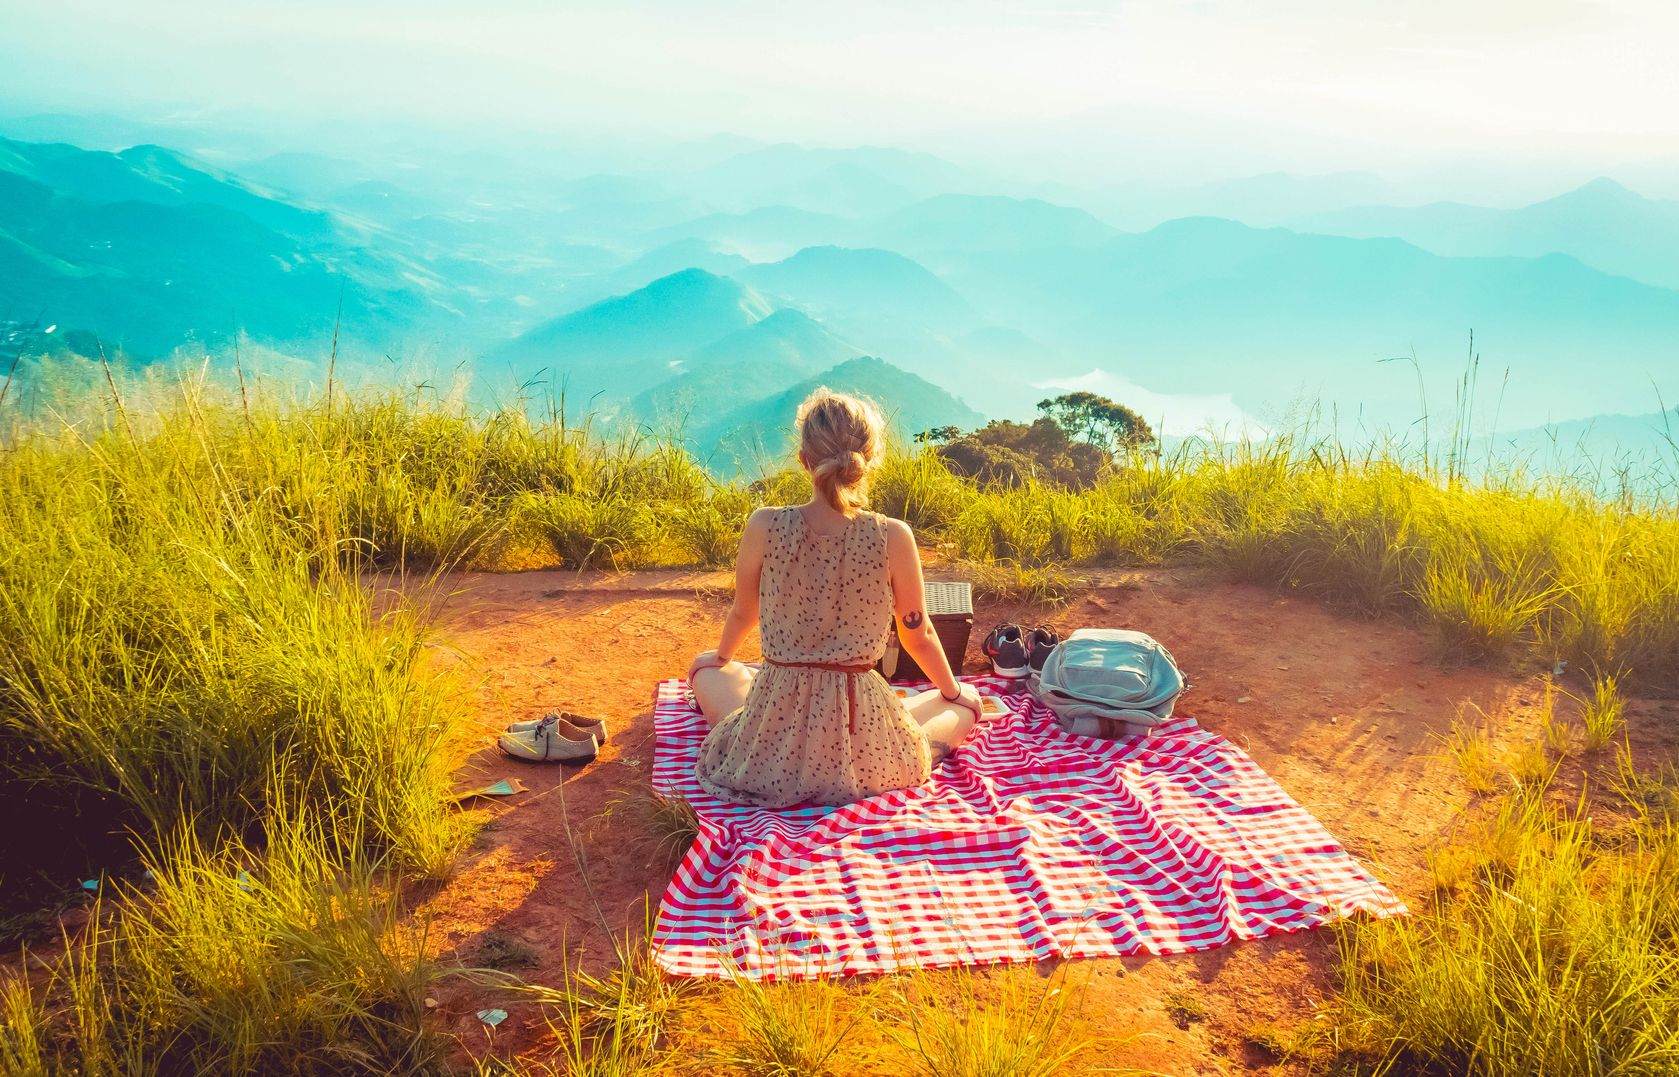 Woman sitting on a picnic blanket spread out on top of a grassy clearing overlooking a misty mountain range